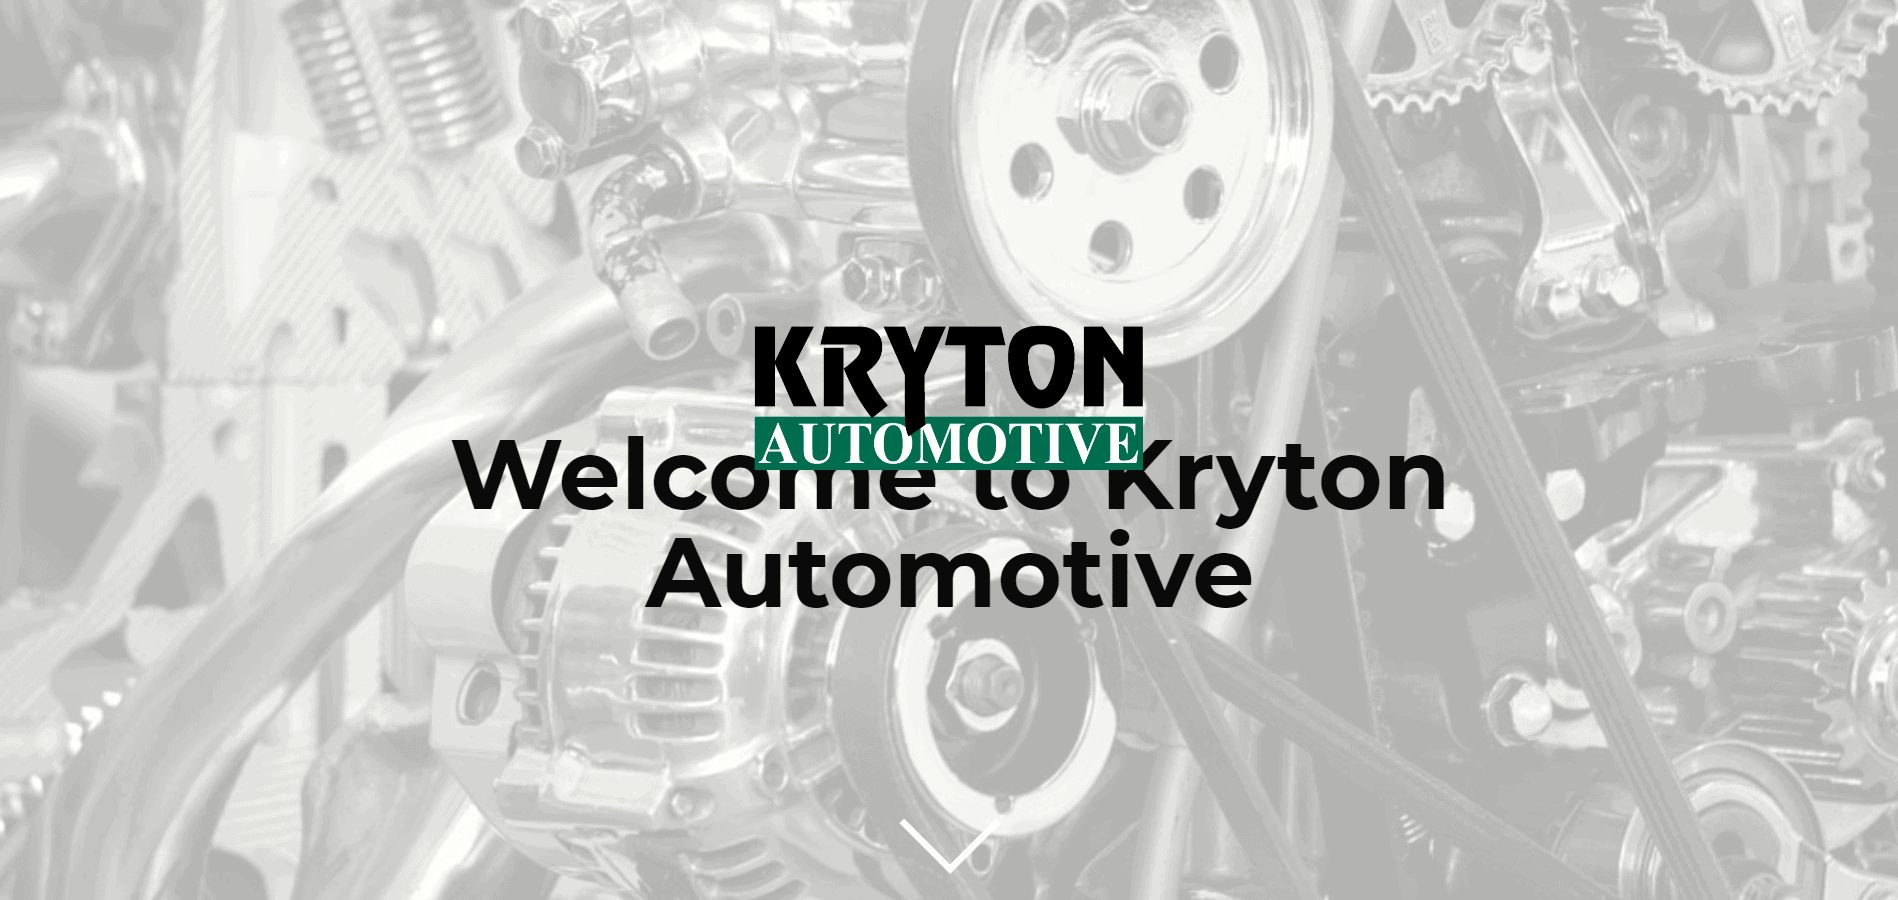 Kryton Automotive